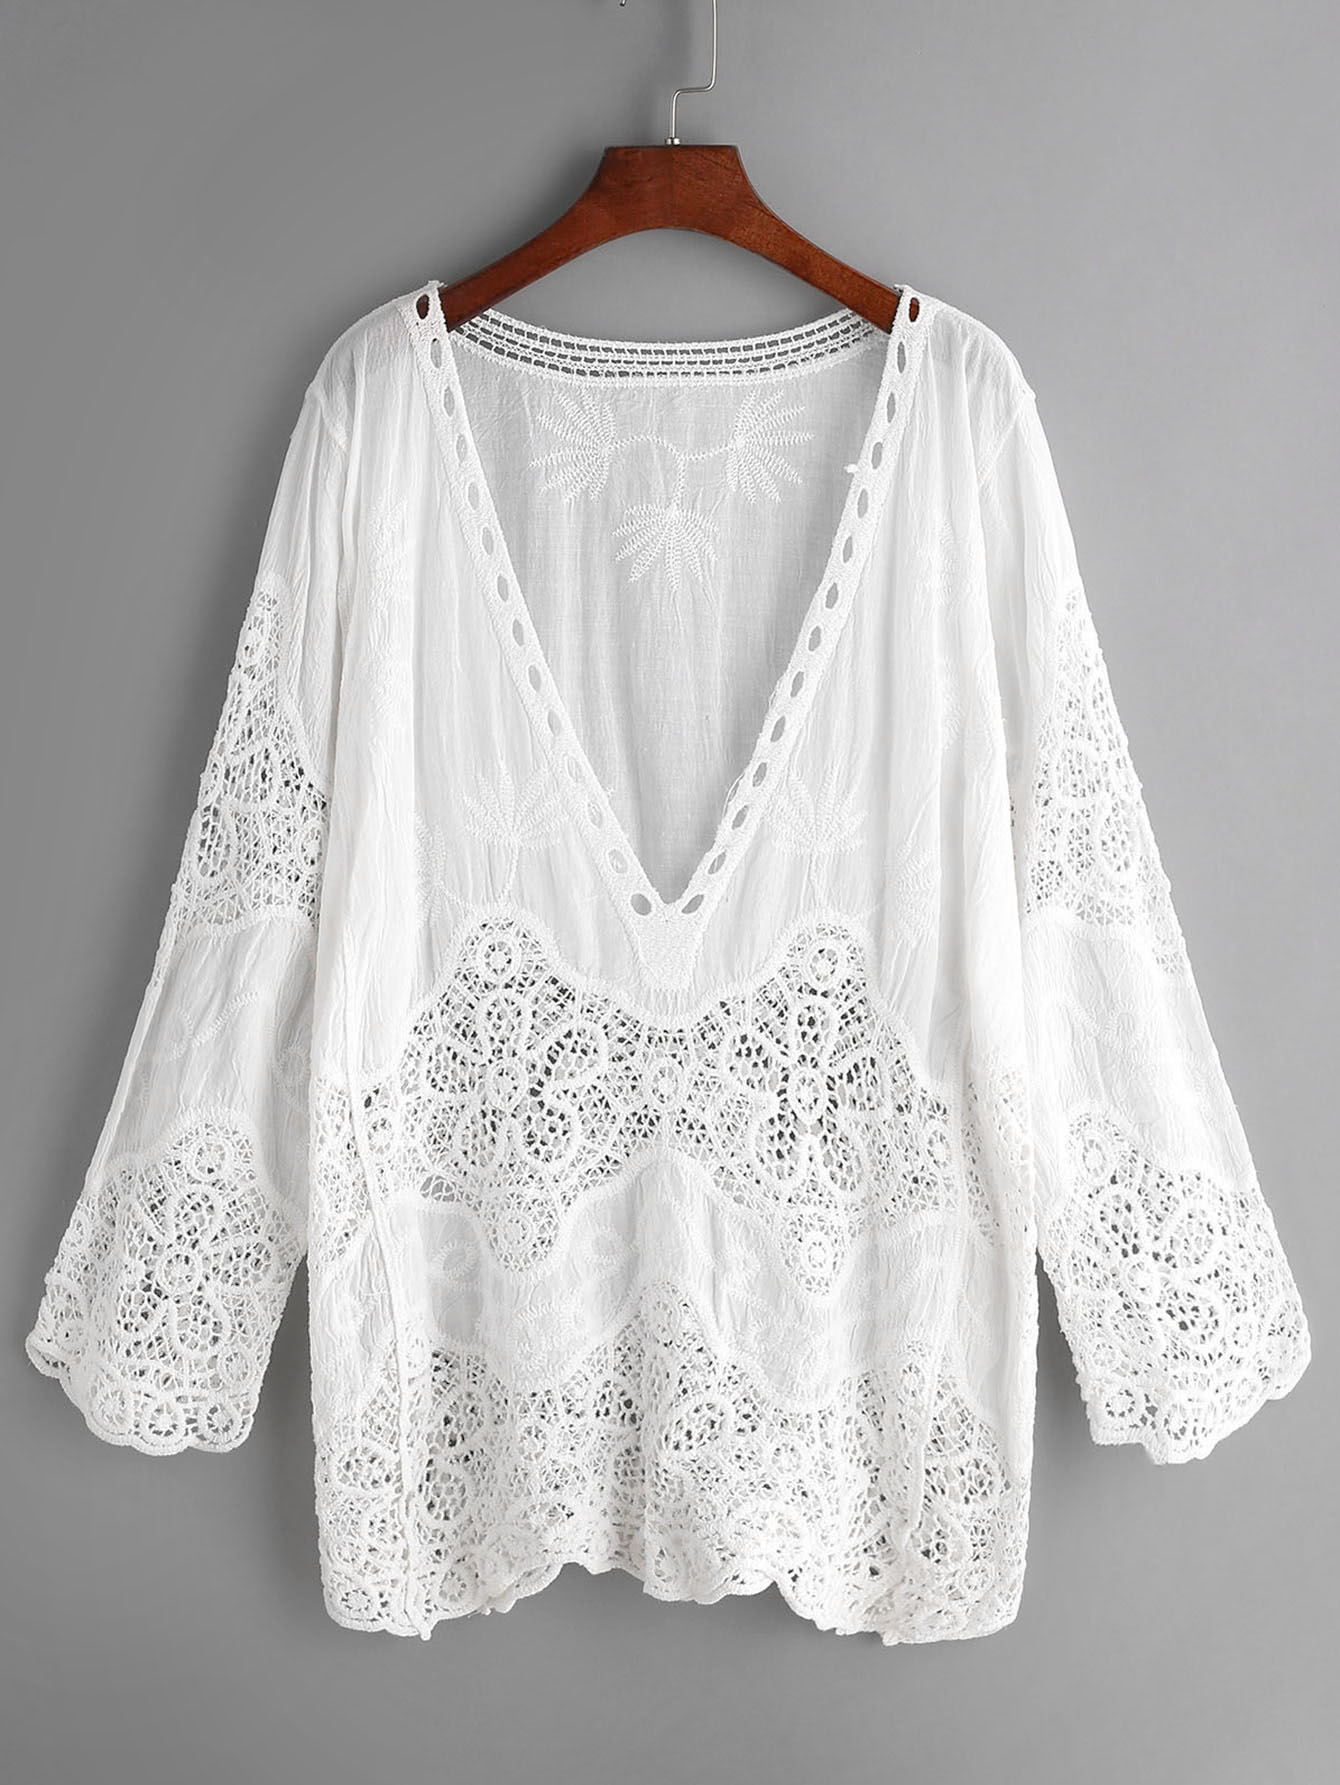 Plunge Neck Embroidered Eyelet Crochet Lace Top